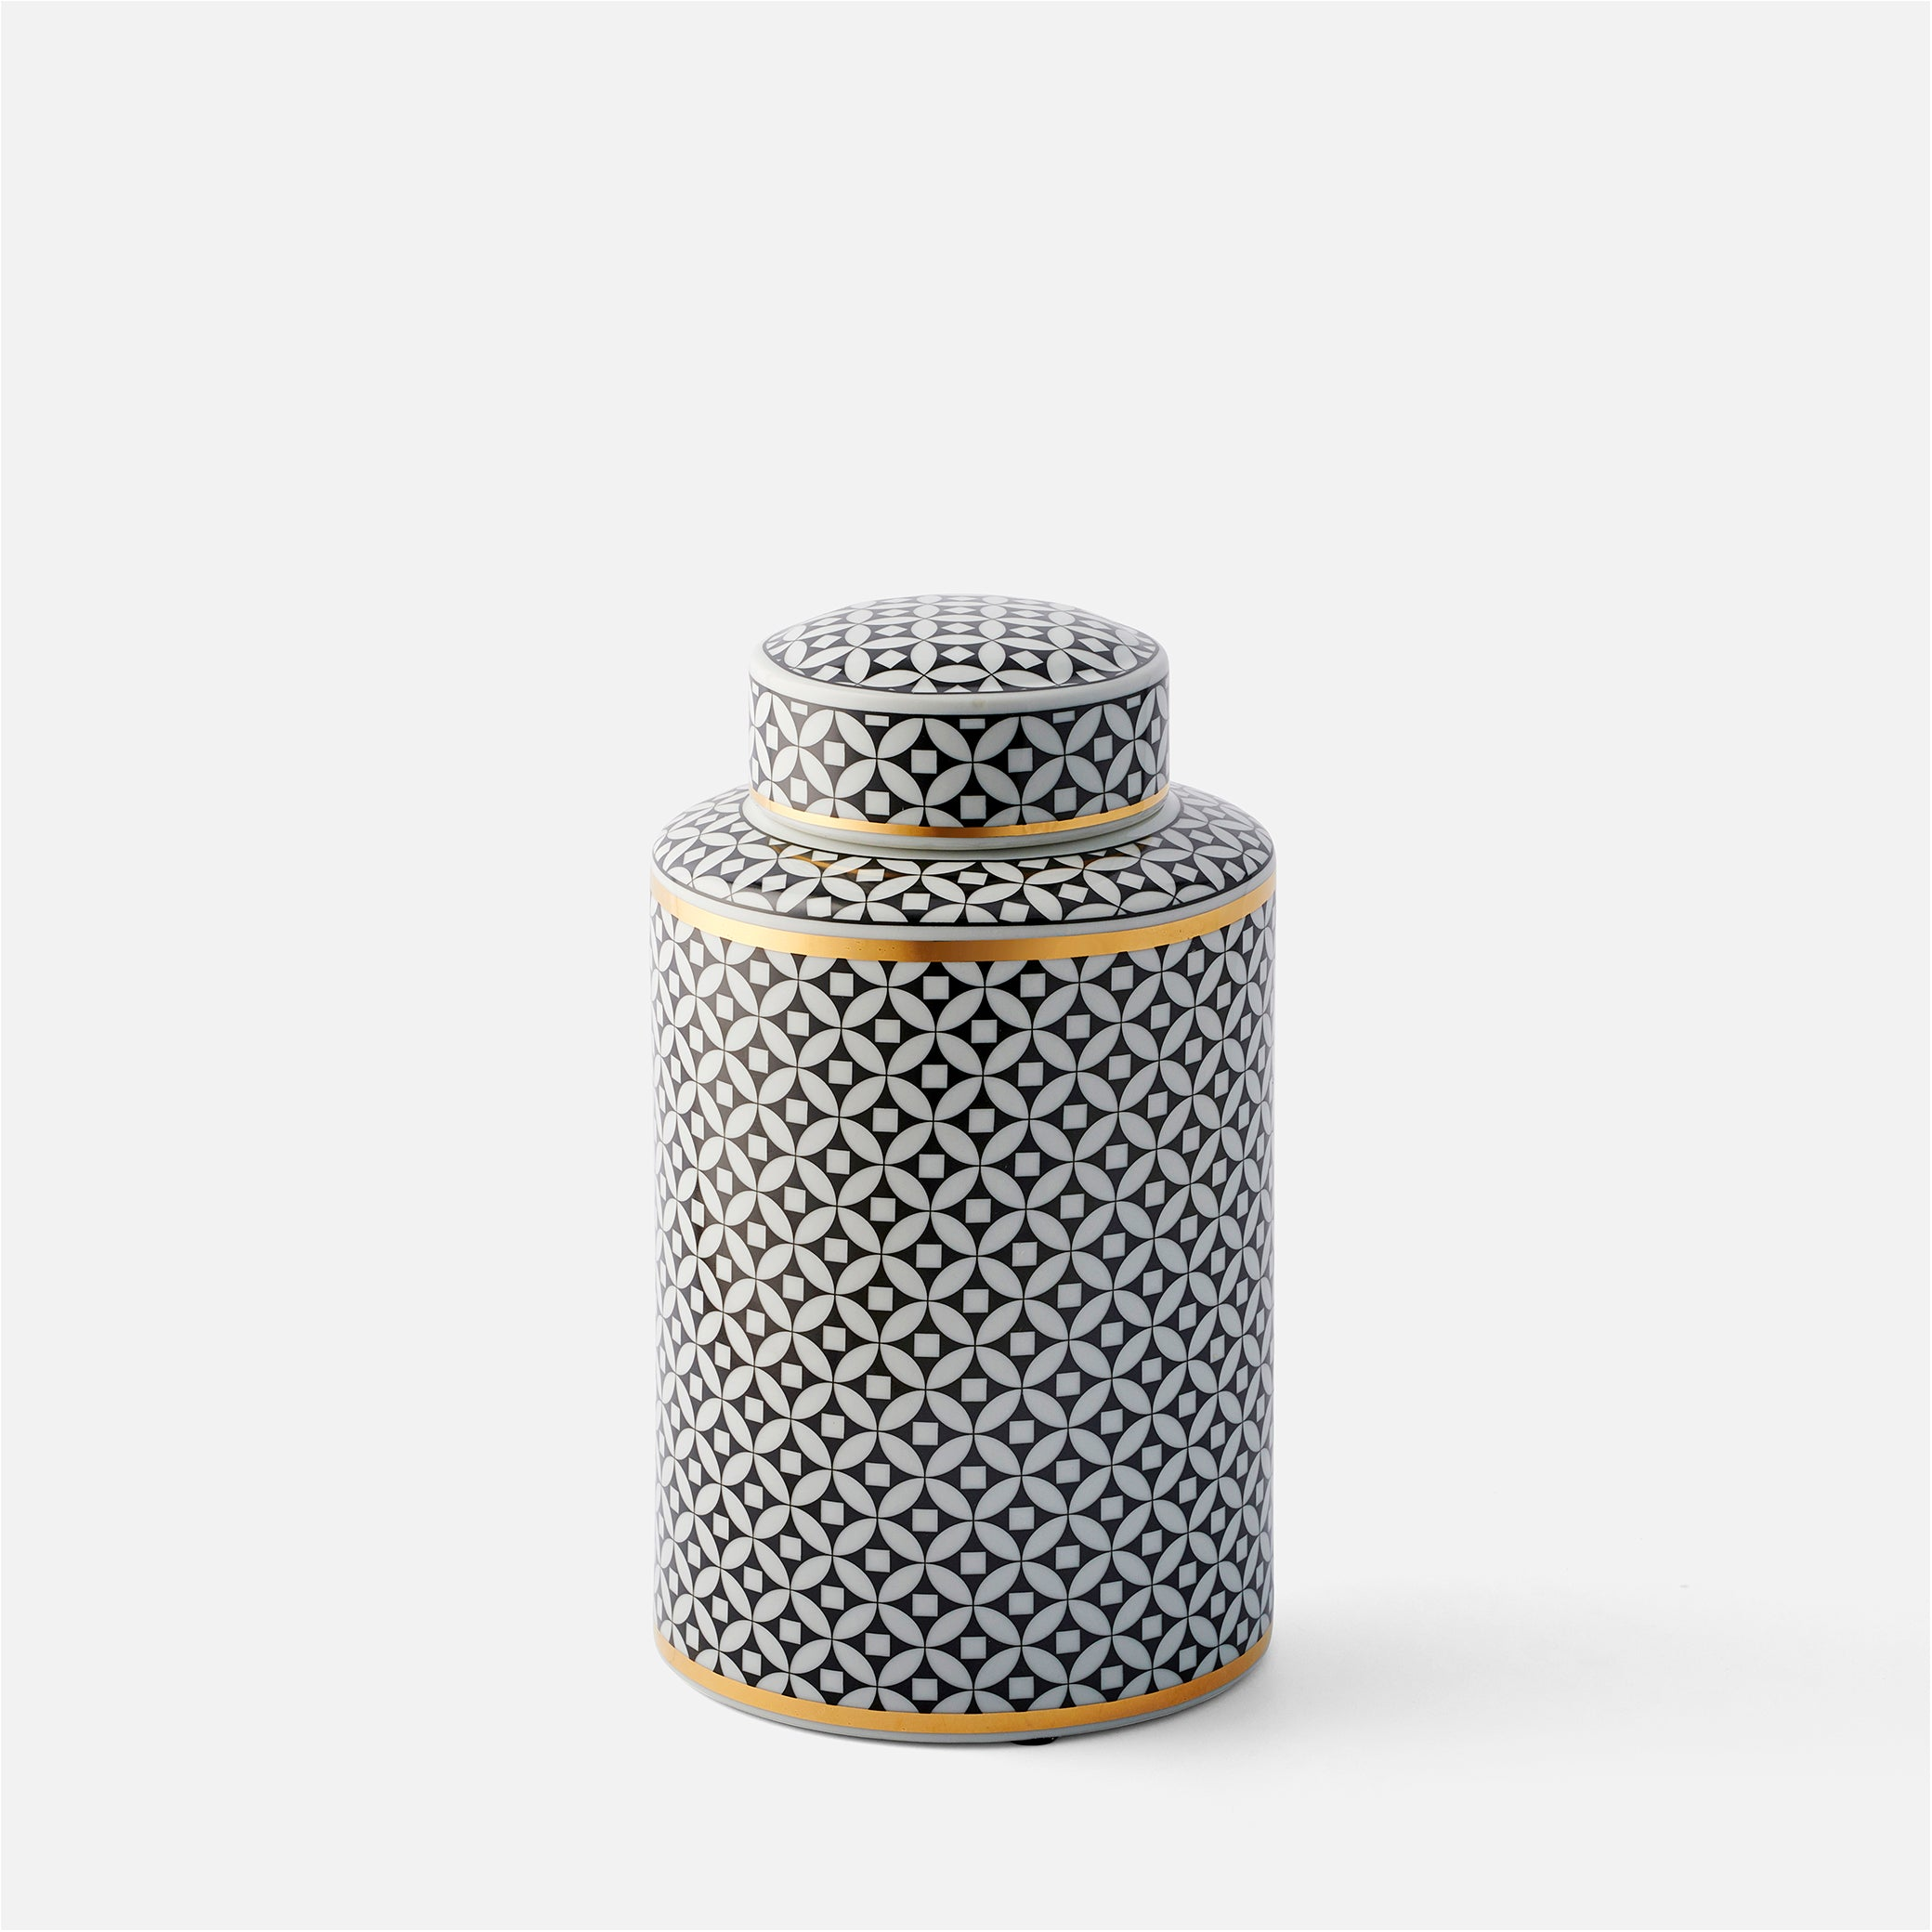 Monochrome Lidded Jar